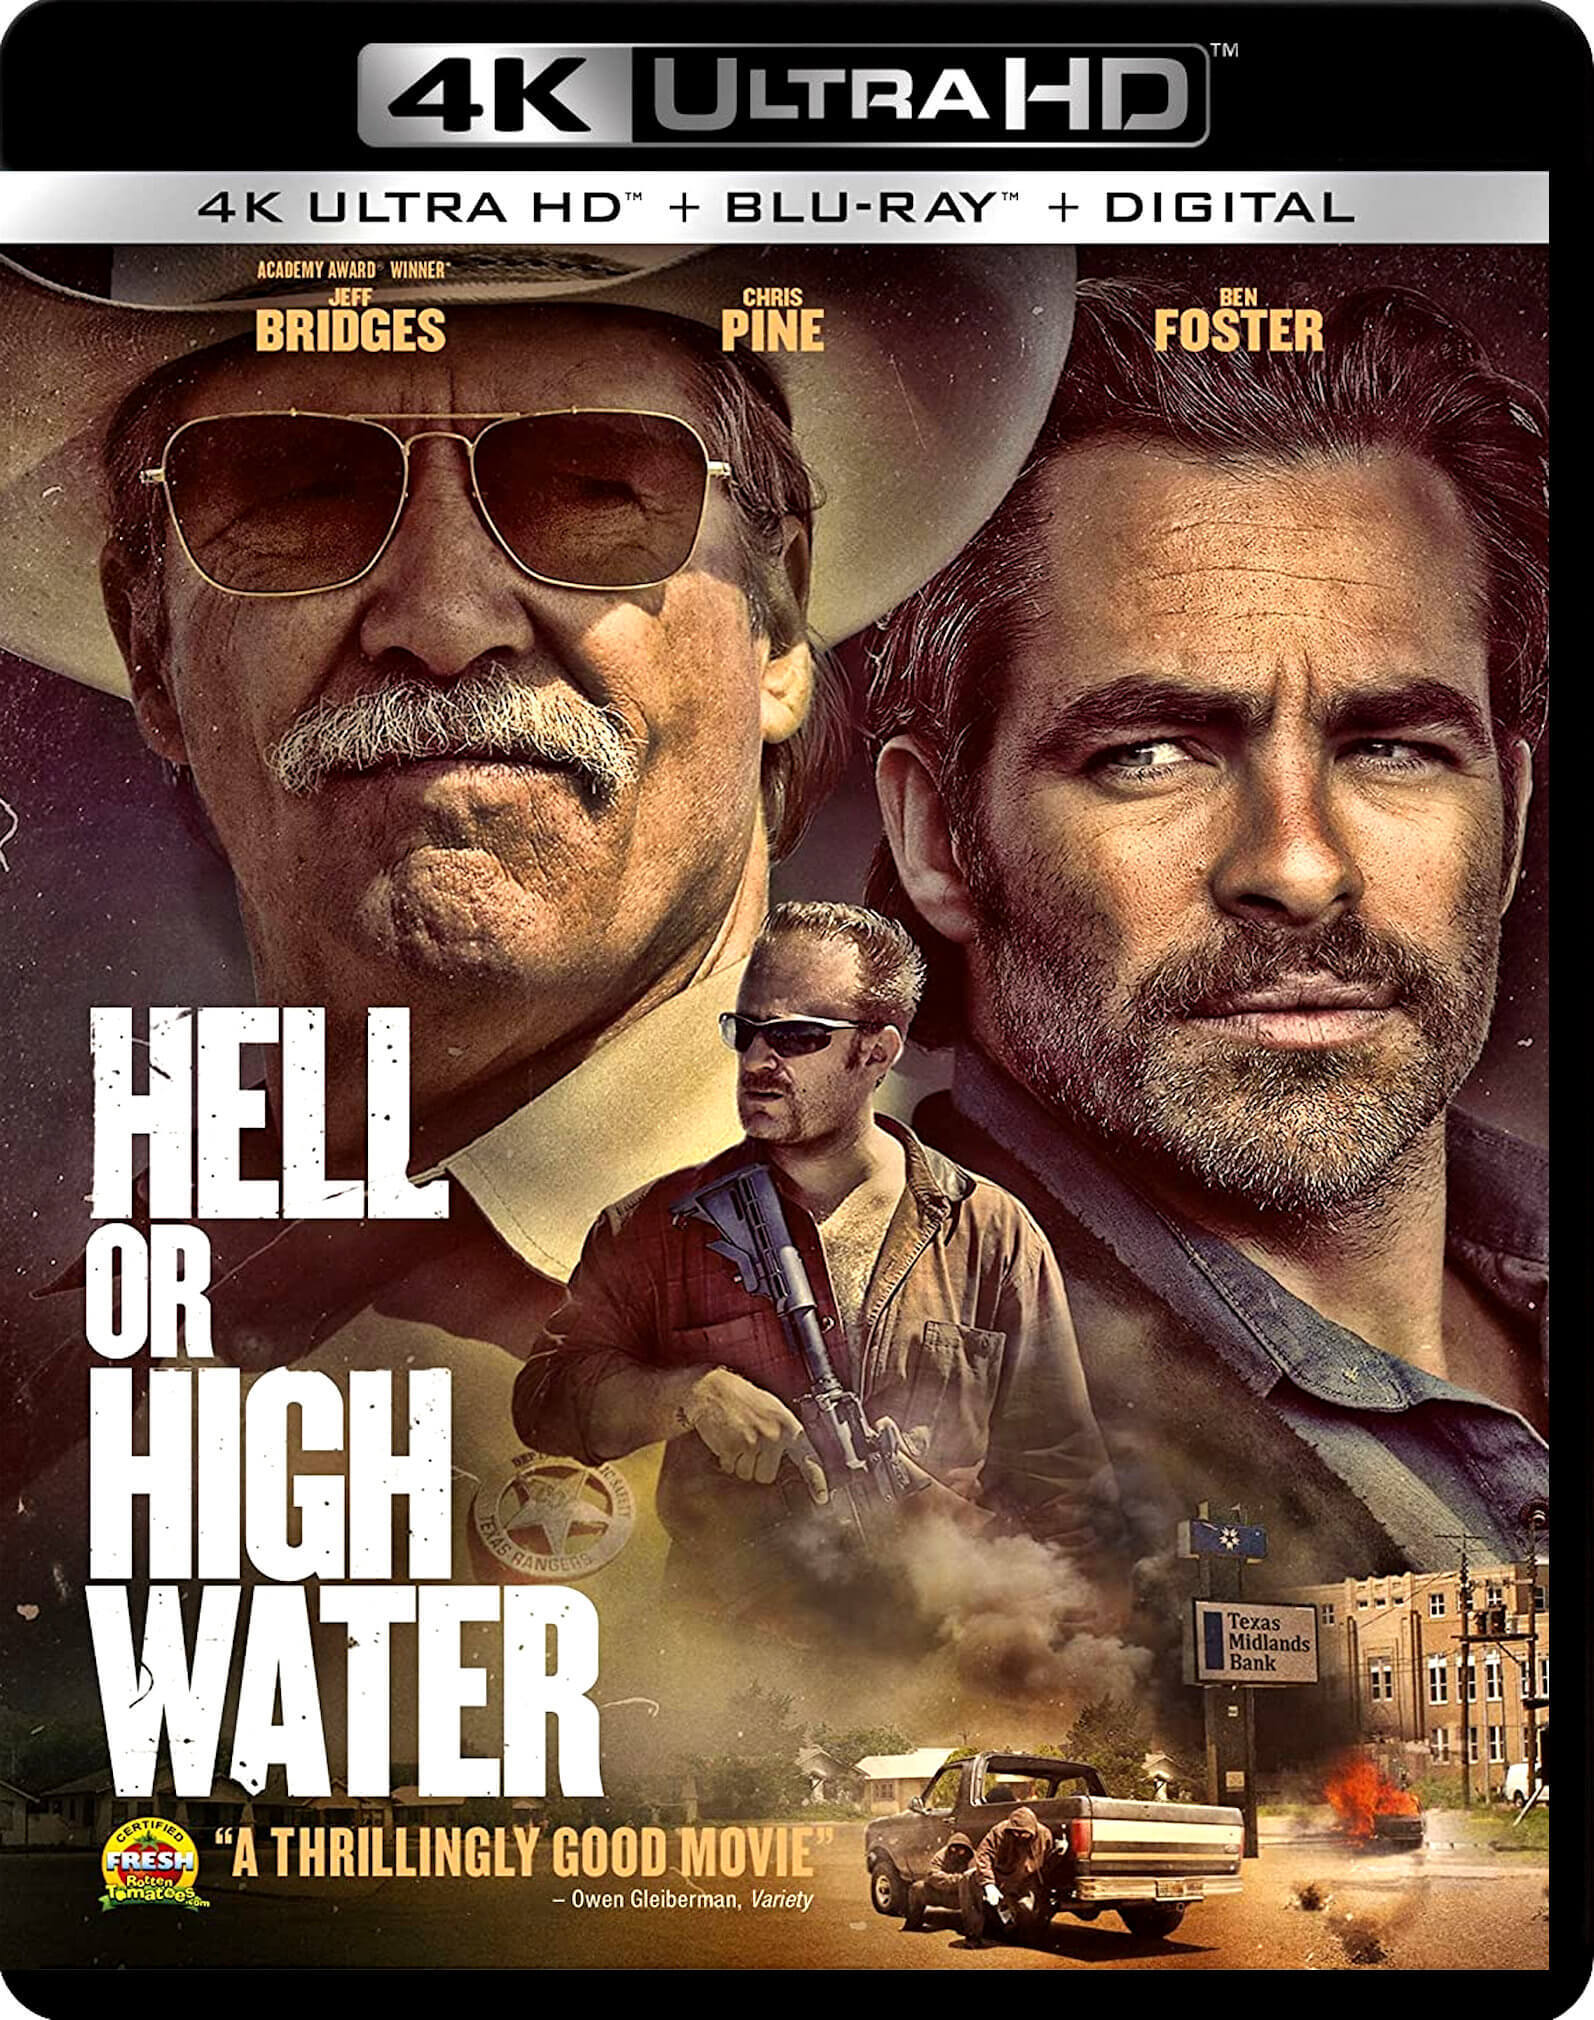 Hell or High Water 4K (2016) UHD Ultra HD Blu-ray